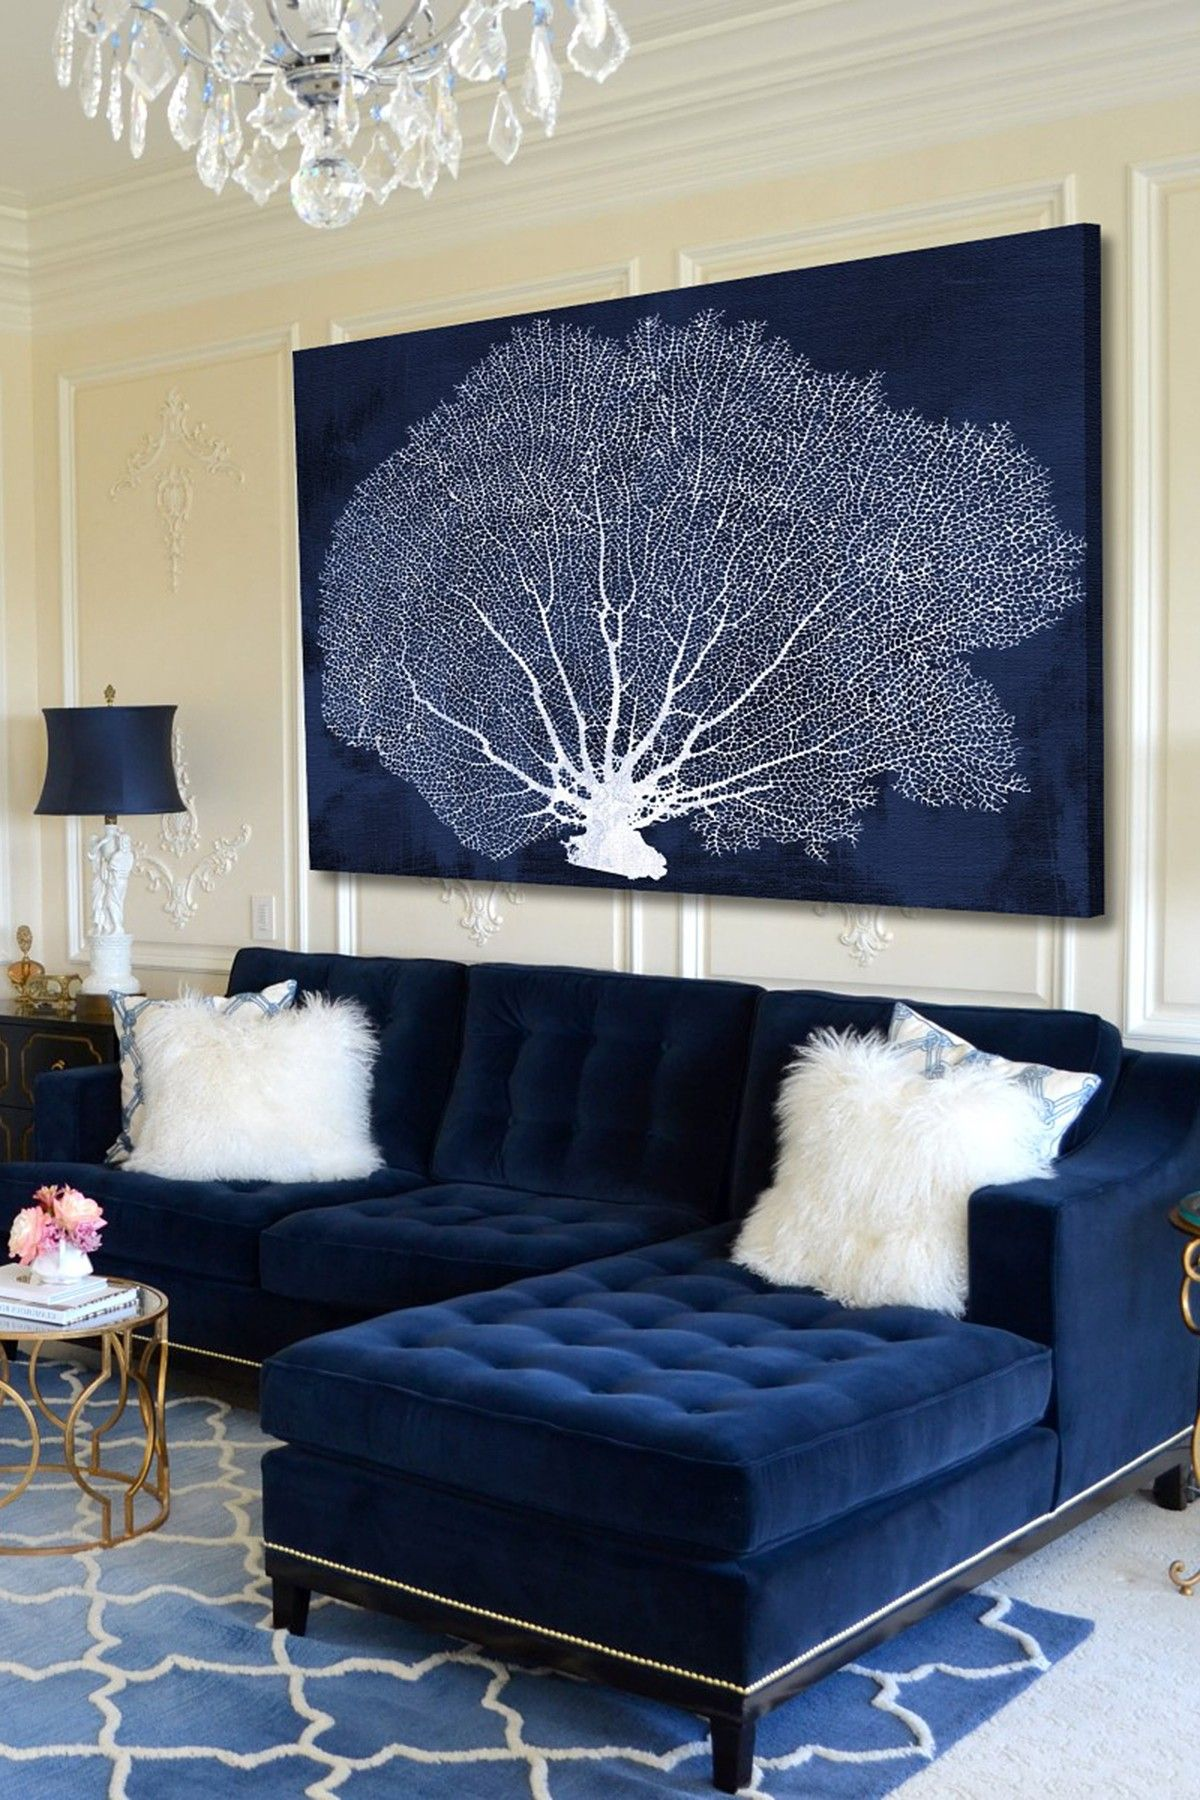 Blue Velvet Sofa Blue Couch Living Blue And White Living Room Blue Couch Living Room #navy #blue #couch #living #room #ideas